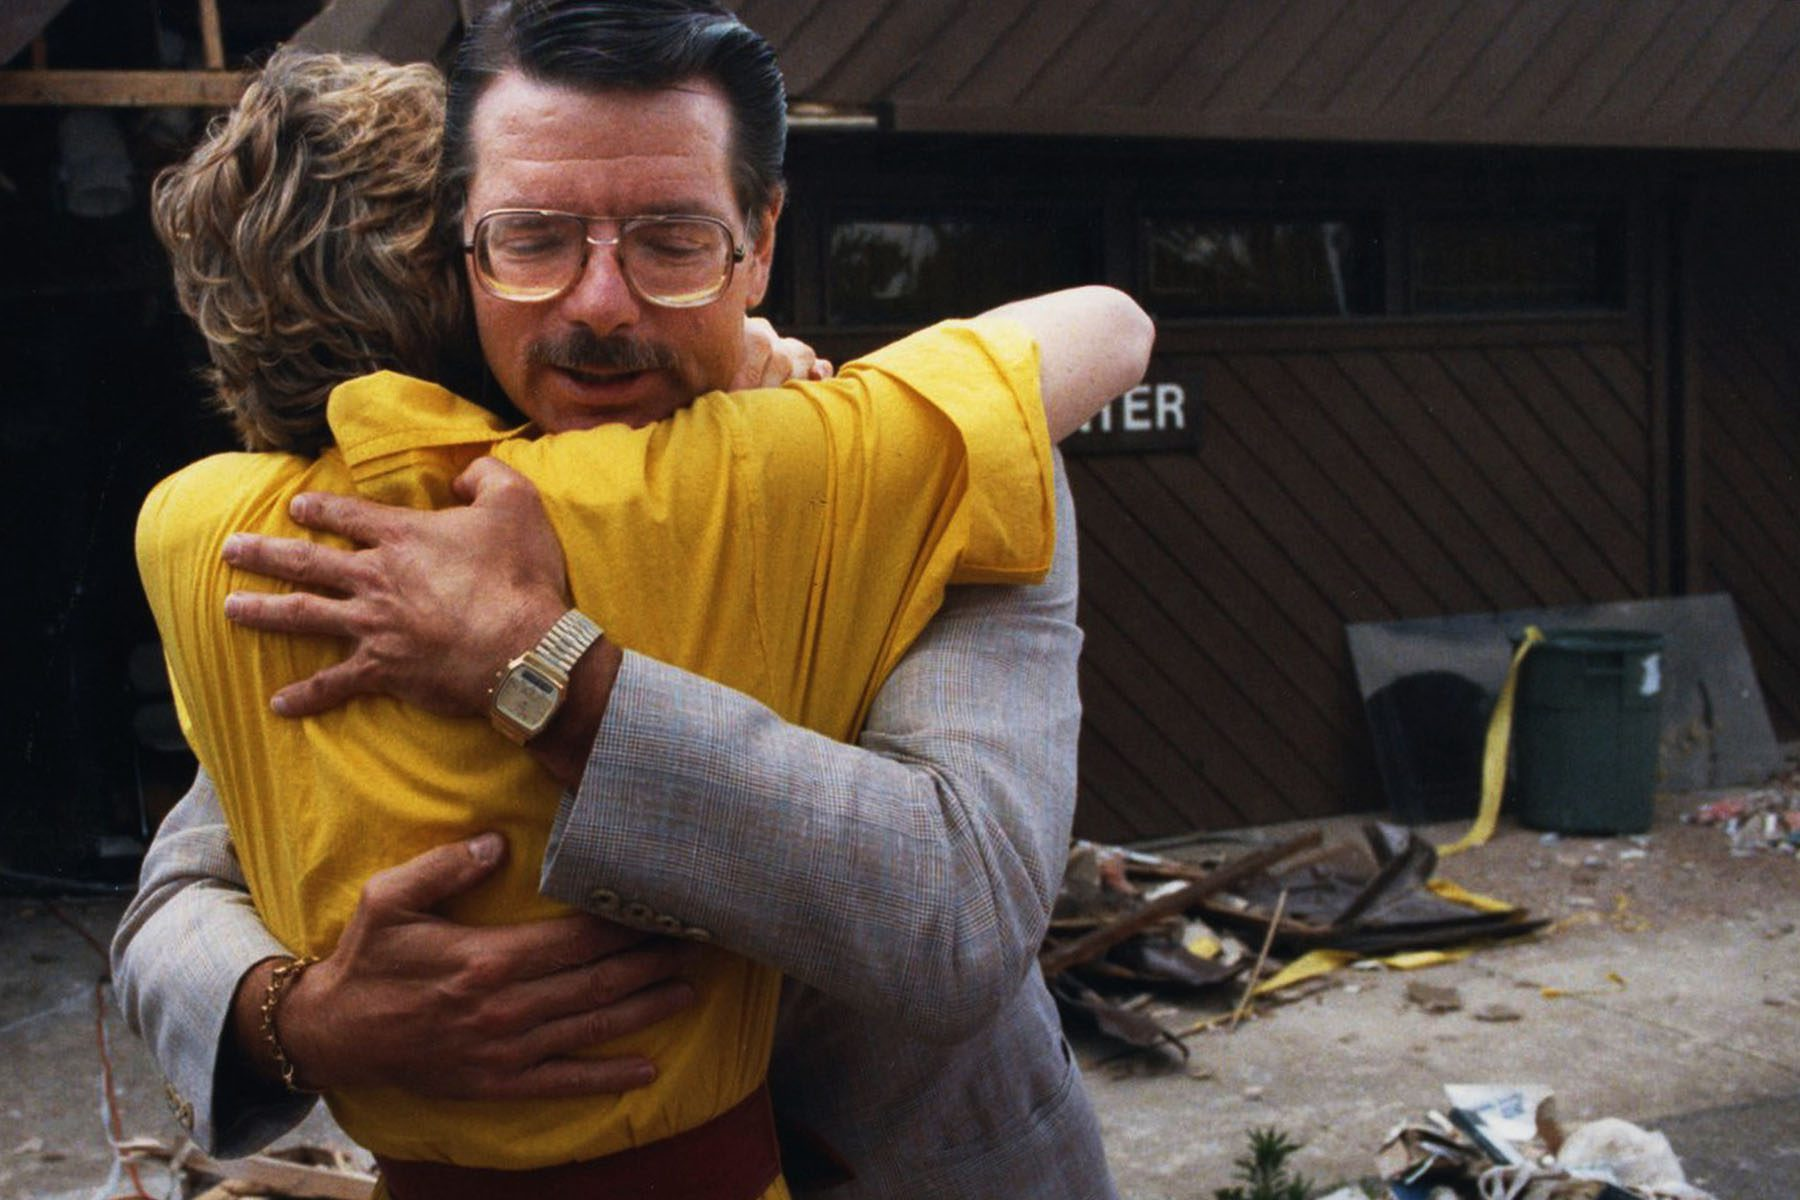 Dr. George Tiller hugs a woman. Behind him are piles of wood and trash from the bombing.